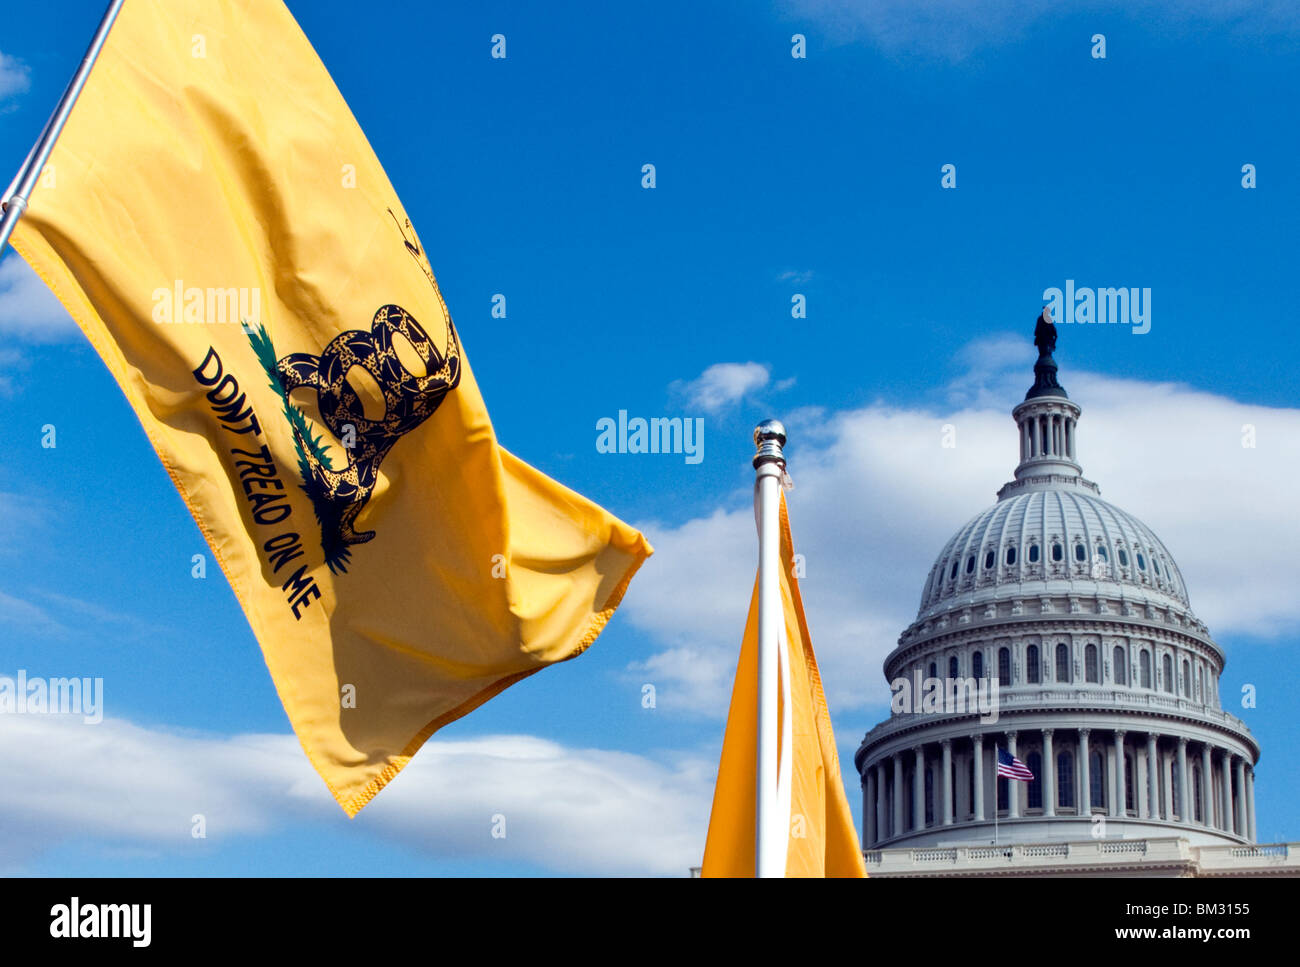 The Gadsden flag  Don't Tread on Me 'Tea Party' flags at the US Capitol Building in Washington DC - Stock Image